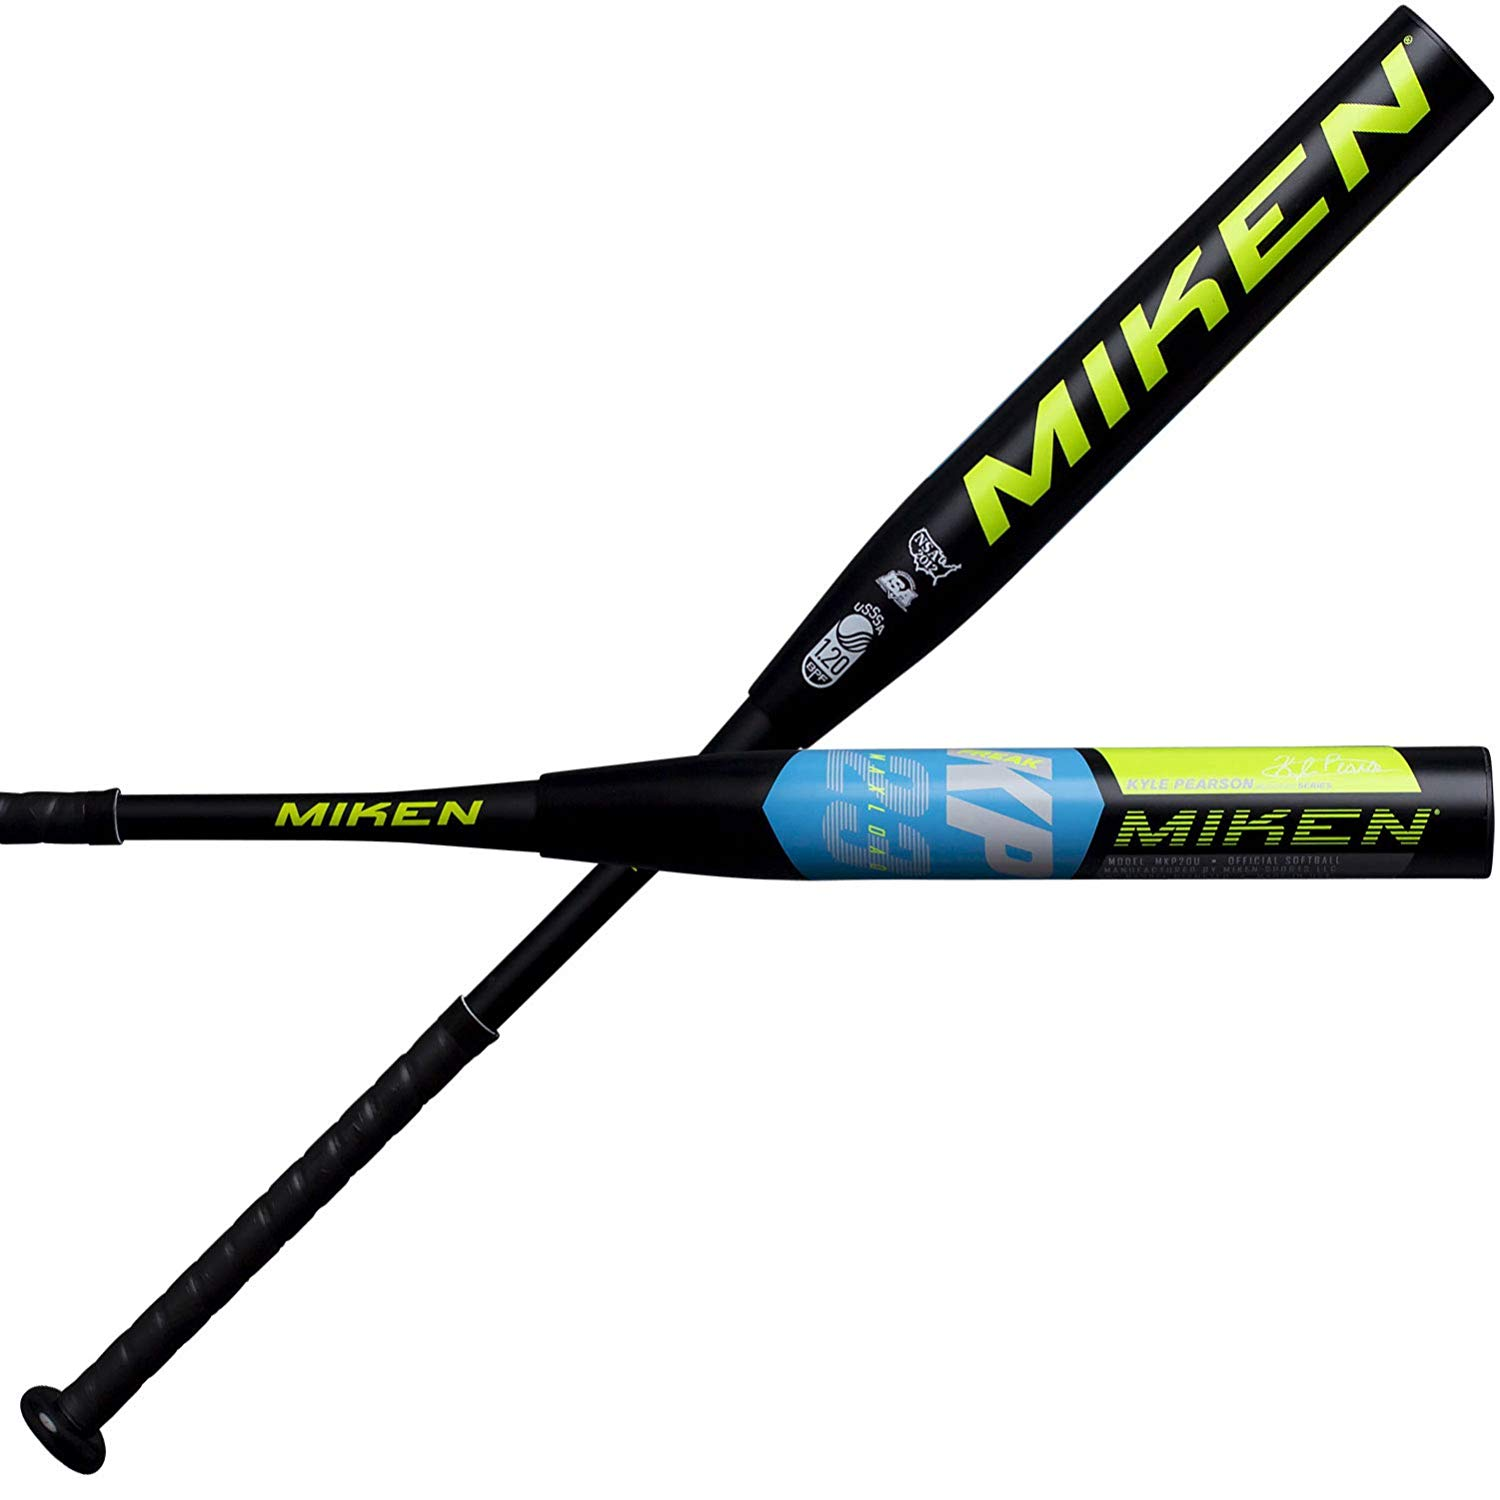 miken-2020-kyle-pearson-freak-23-maxload-usssa-slow-pitch-softball-bat-34-inch-28-oz MKP20U-3-28 Miken 658925042911 DESIGNED FOR ADULTS PLAYING RECREATIONAL AND COMPETITIVE SLOWPITCH SOFTBALL this Miken